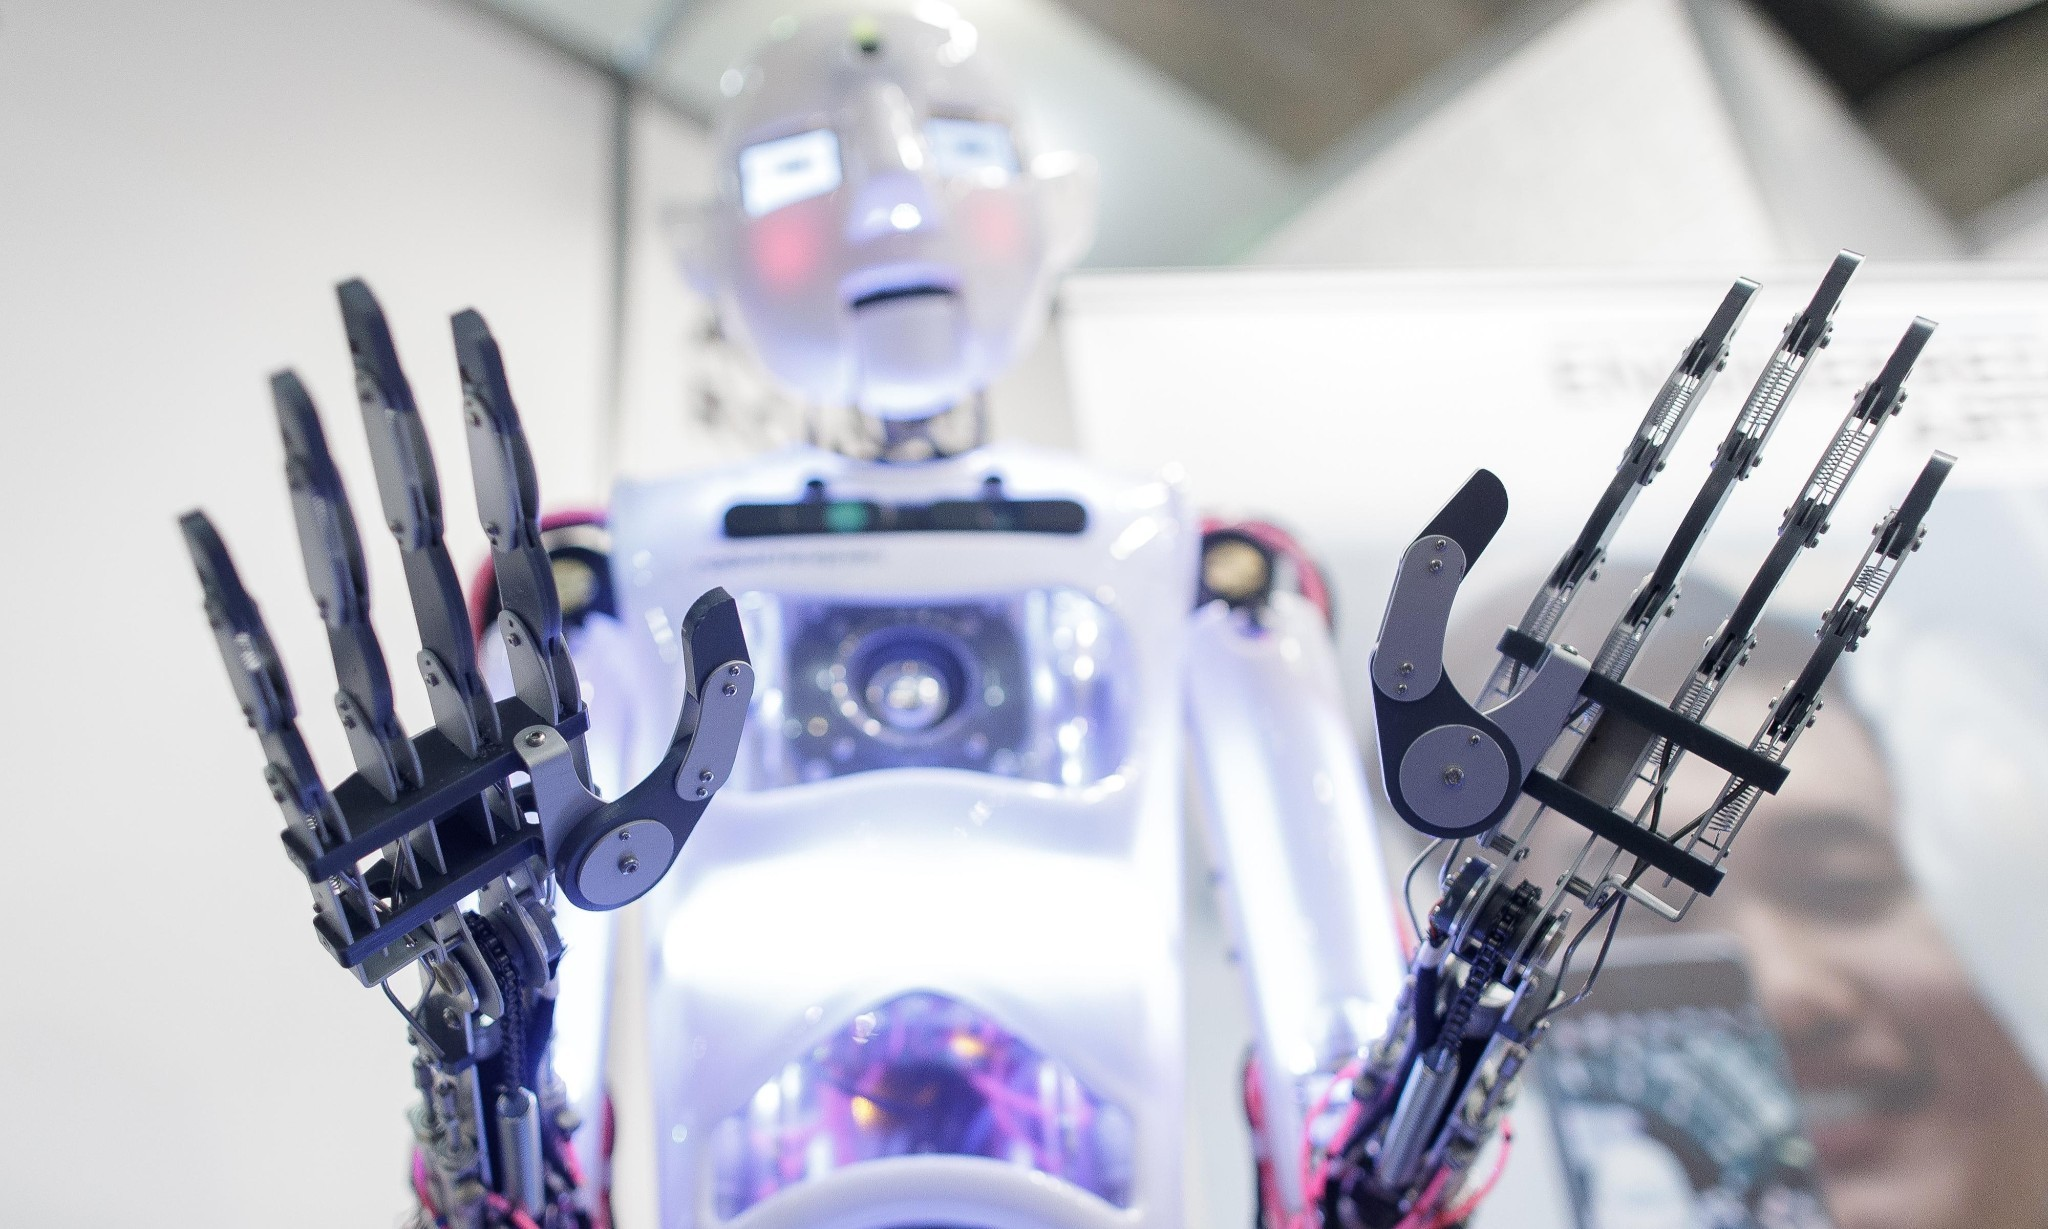 Robots 'could replace 250,000 UK public sector workers'